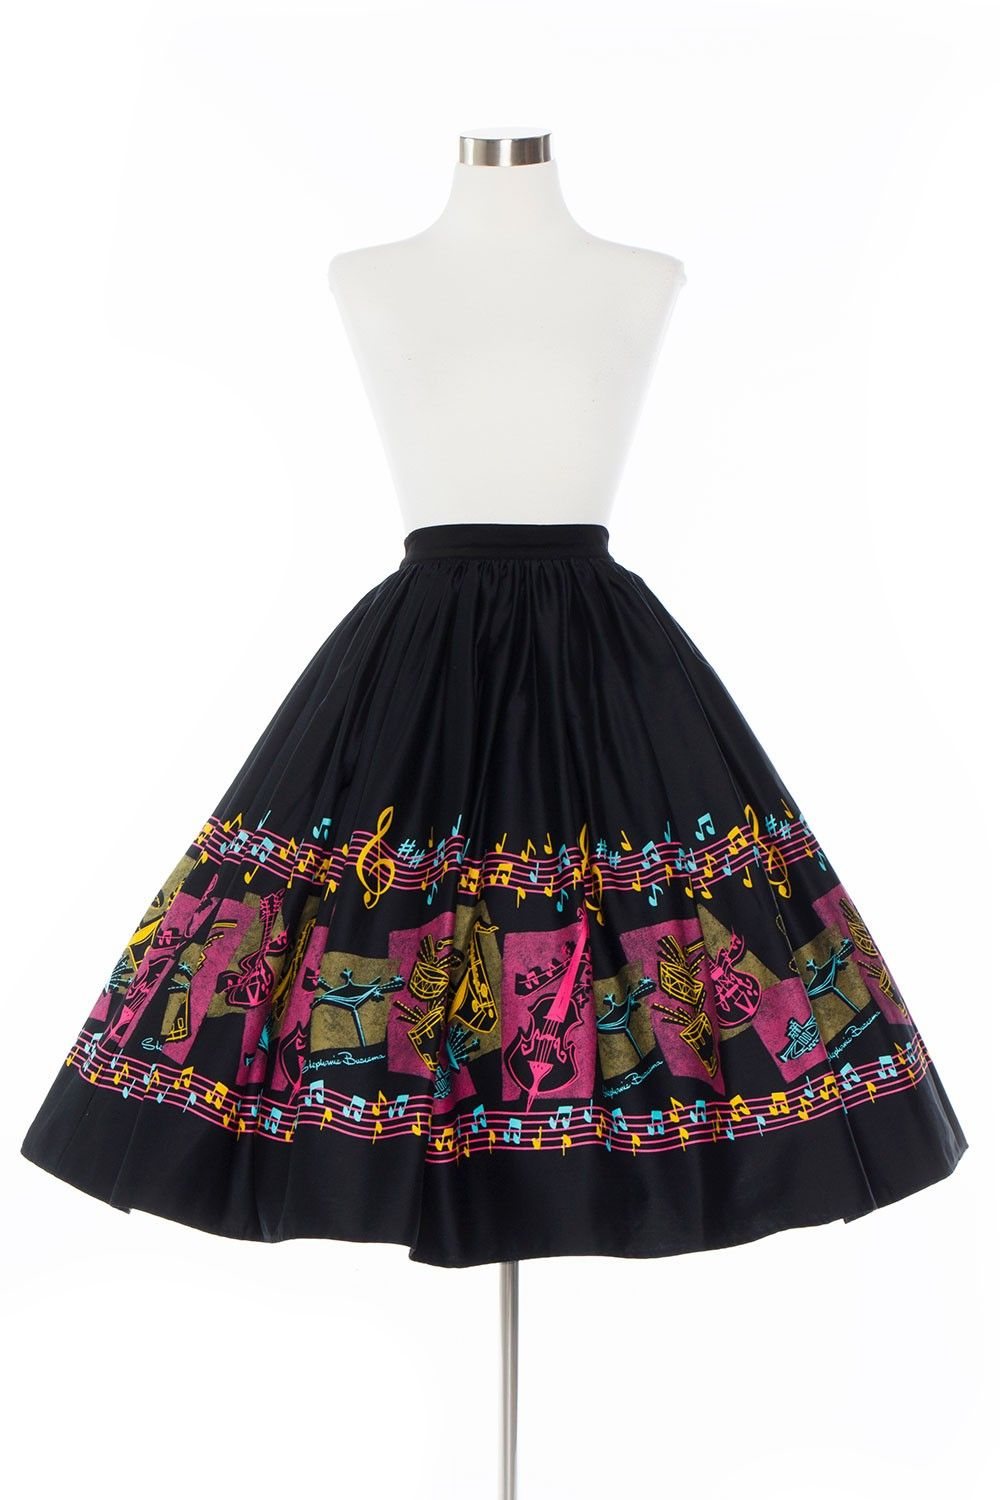 Cheap Pin Up Clothing Pinup Couture Jenny 1950's Style Skirt In Music Border Print  Pinup